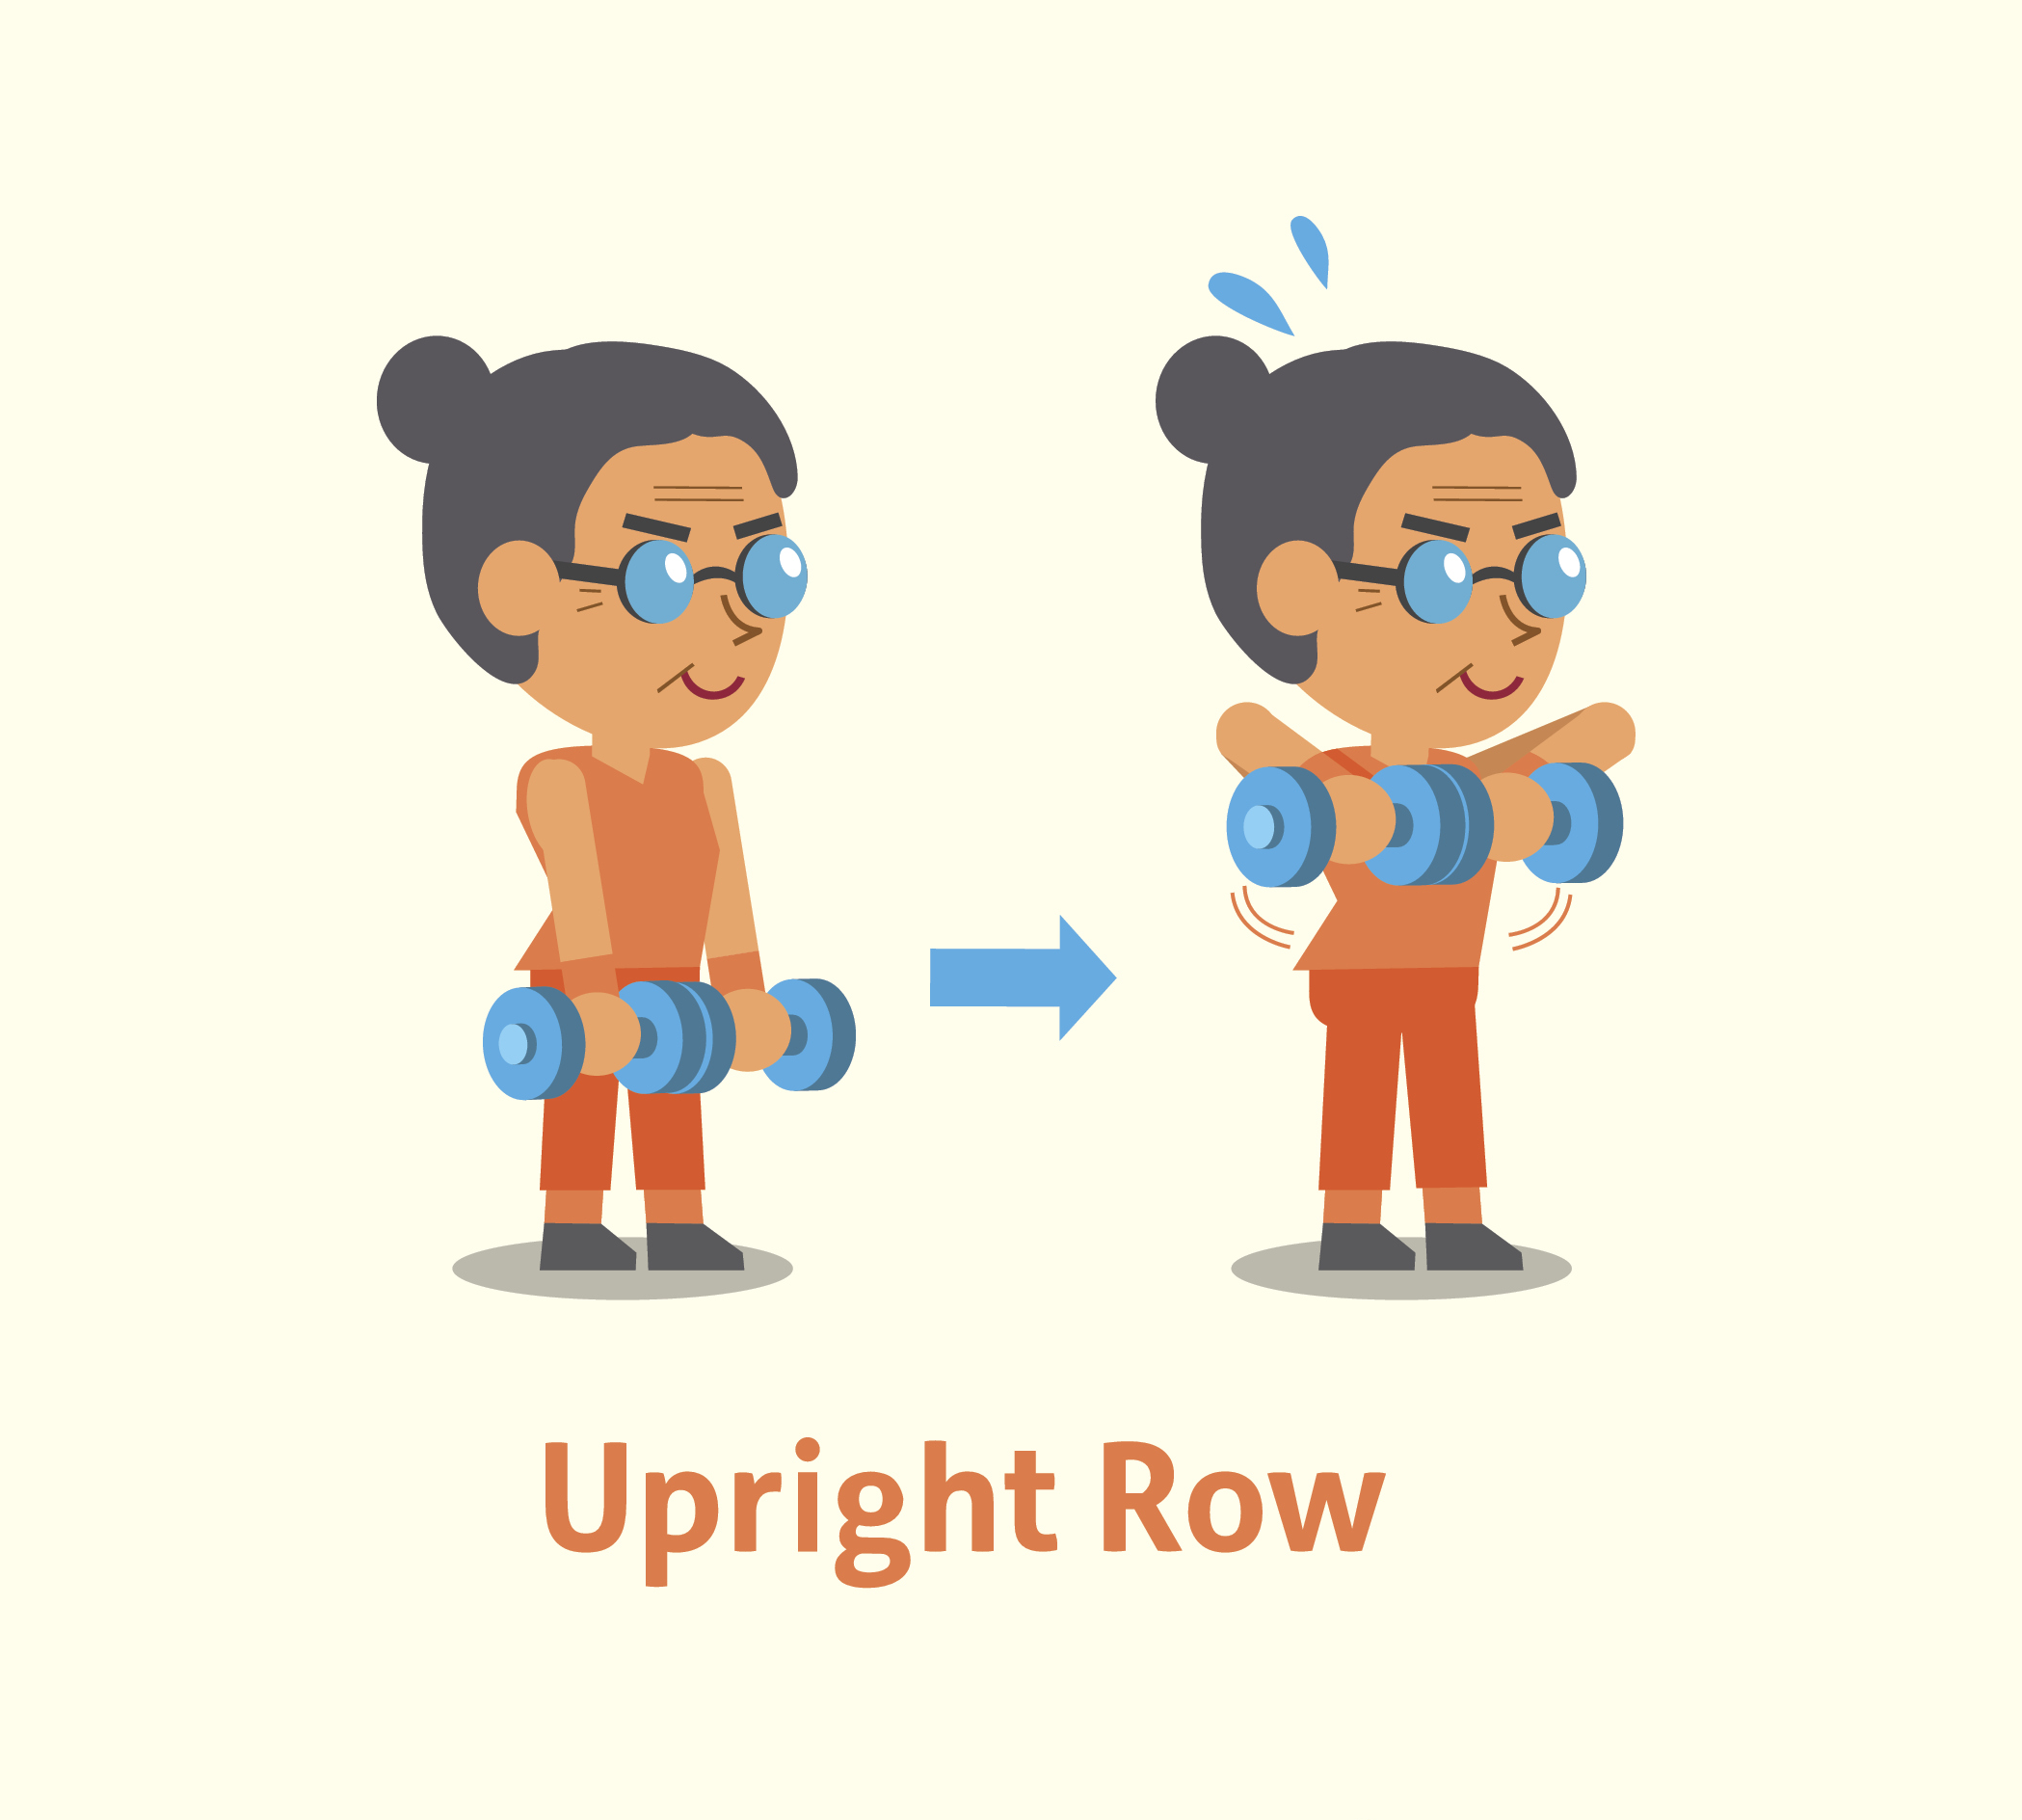 upright row